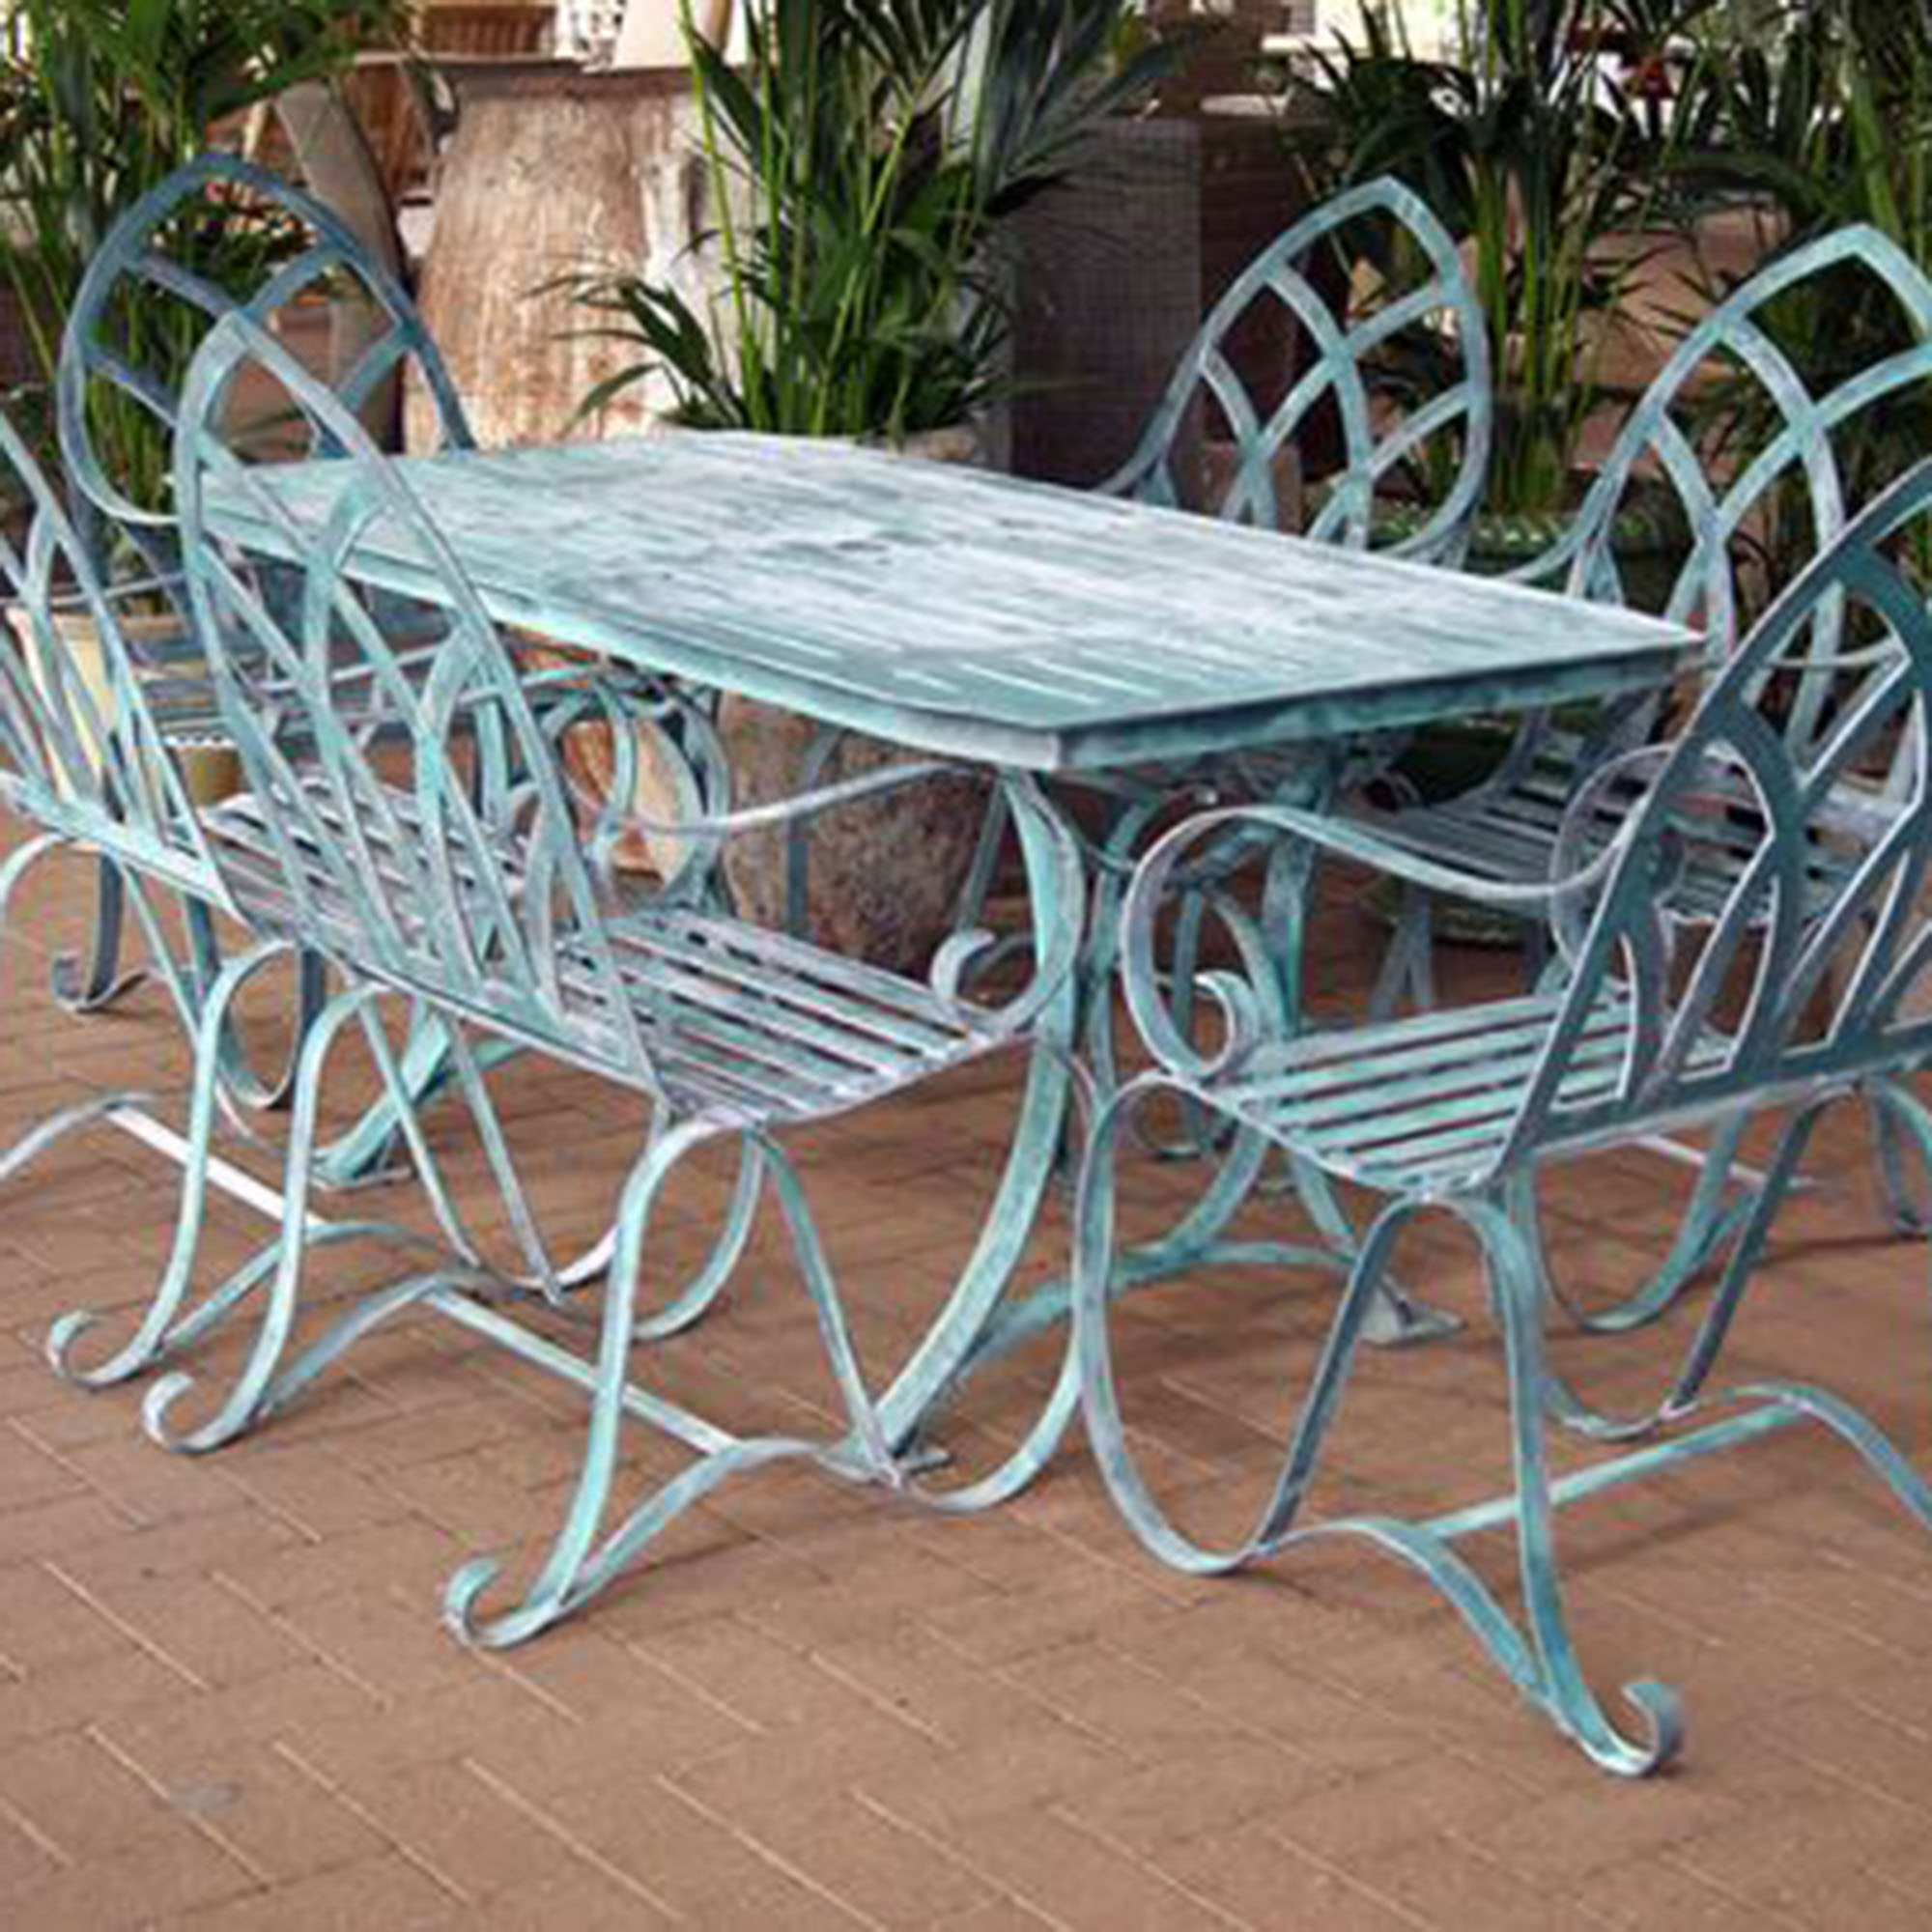 Iron Garden Table And Chairs Part - 43: Verdigris Gothic Metal Garden Furniture Set For Six ...